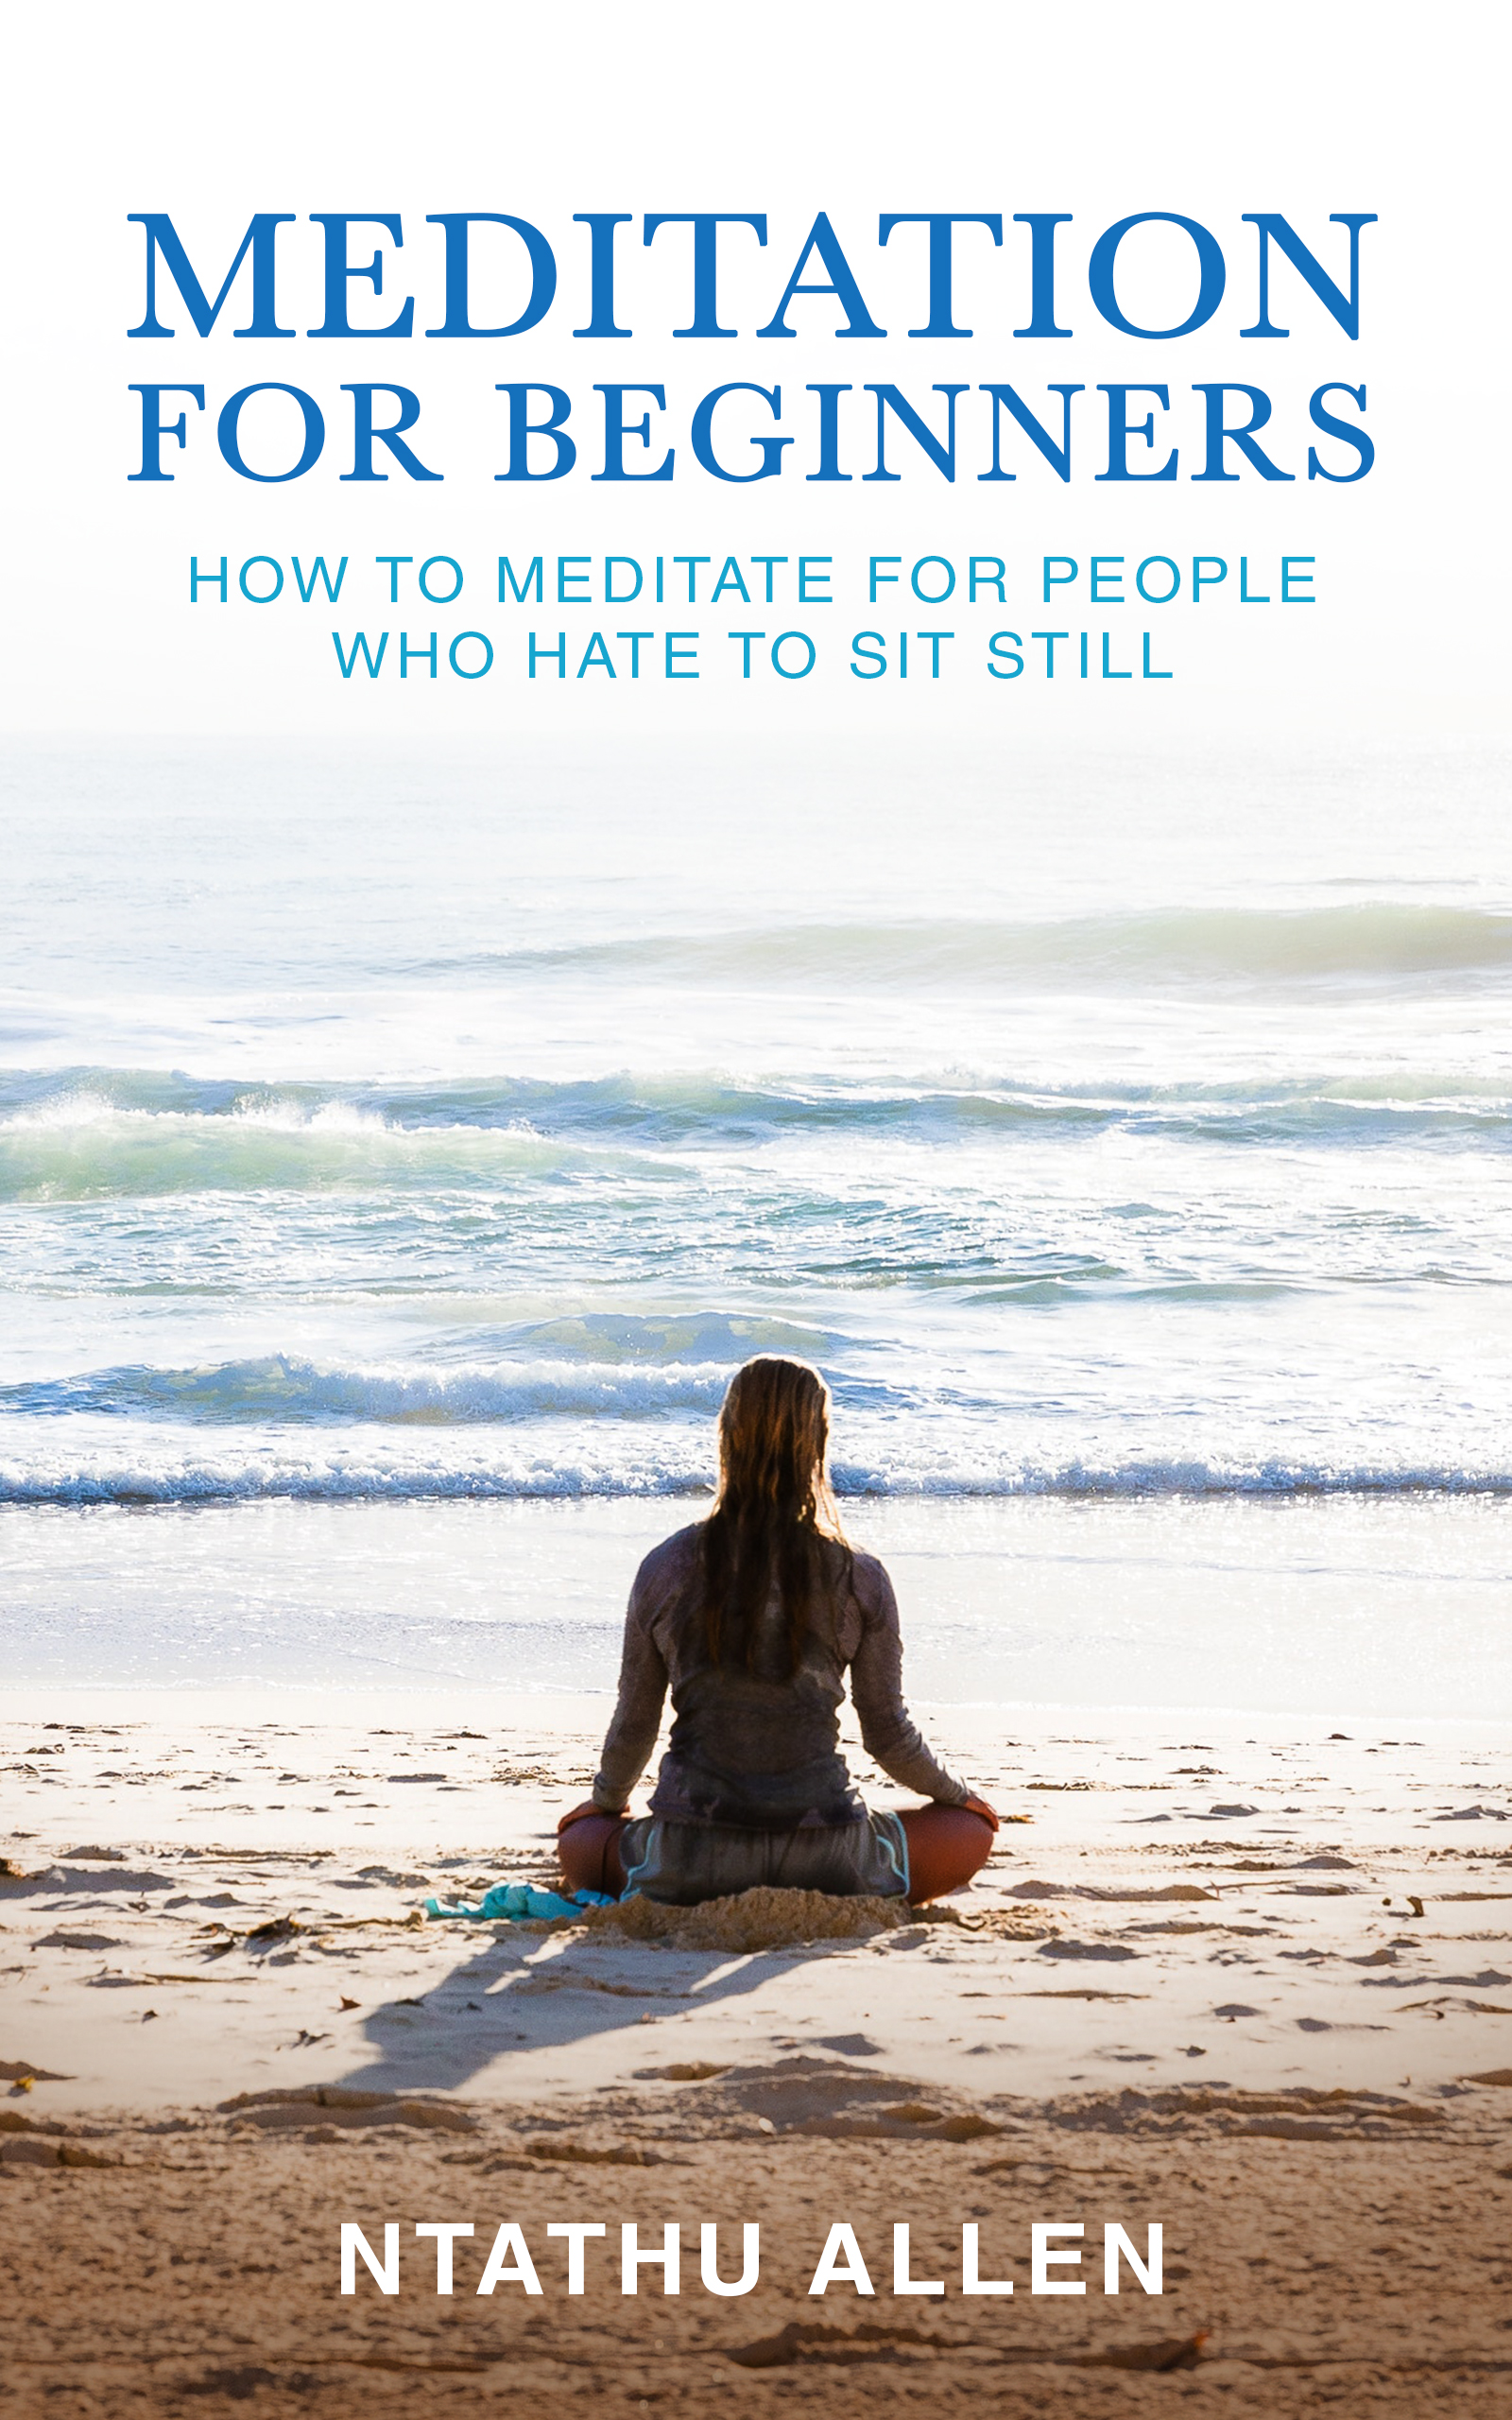 Meditation for Beginners: How to Meditate for People who Hate to Sit Still